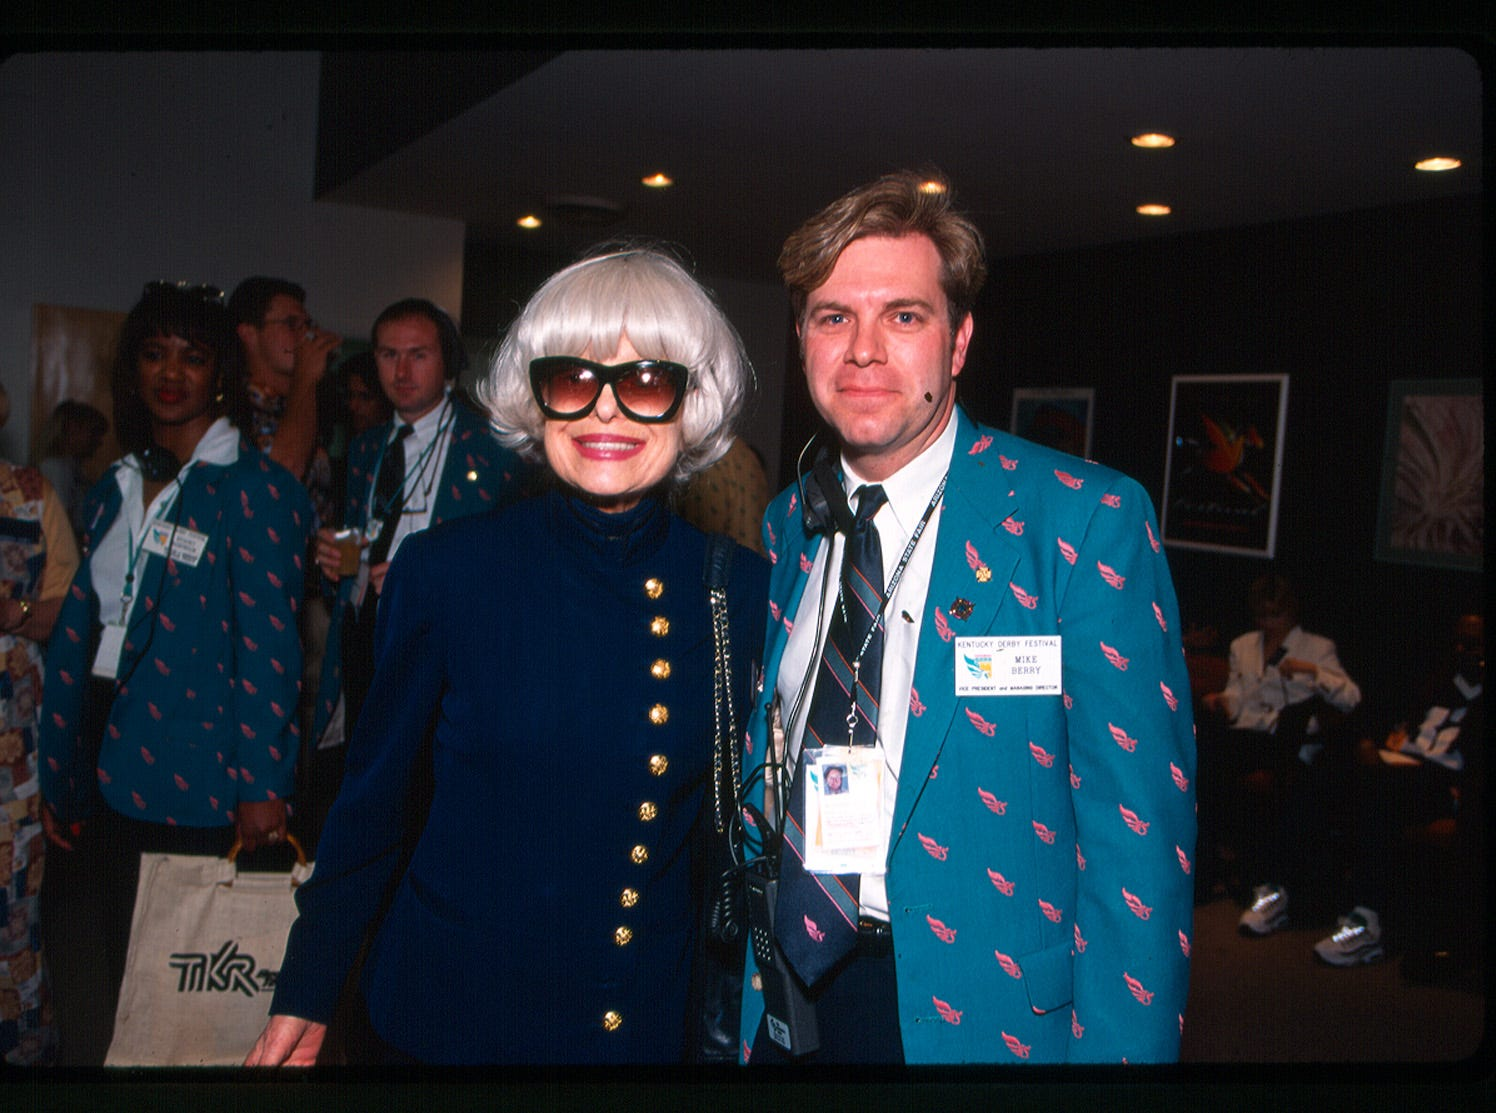 Mike Berry pictured with Carol Channing in 1996.